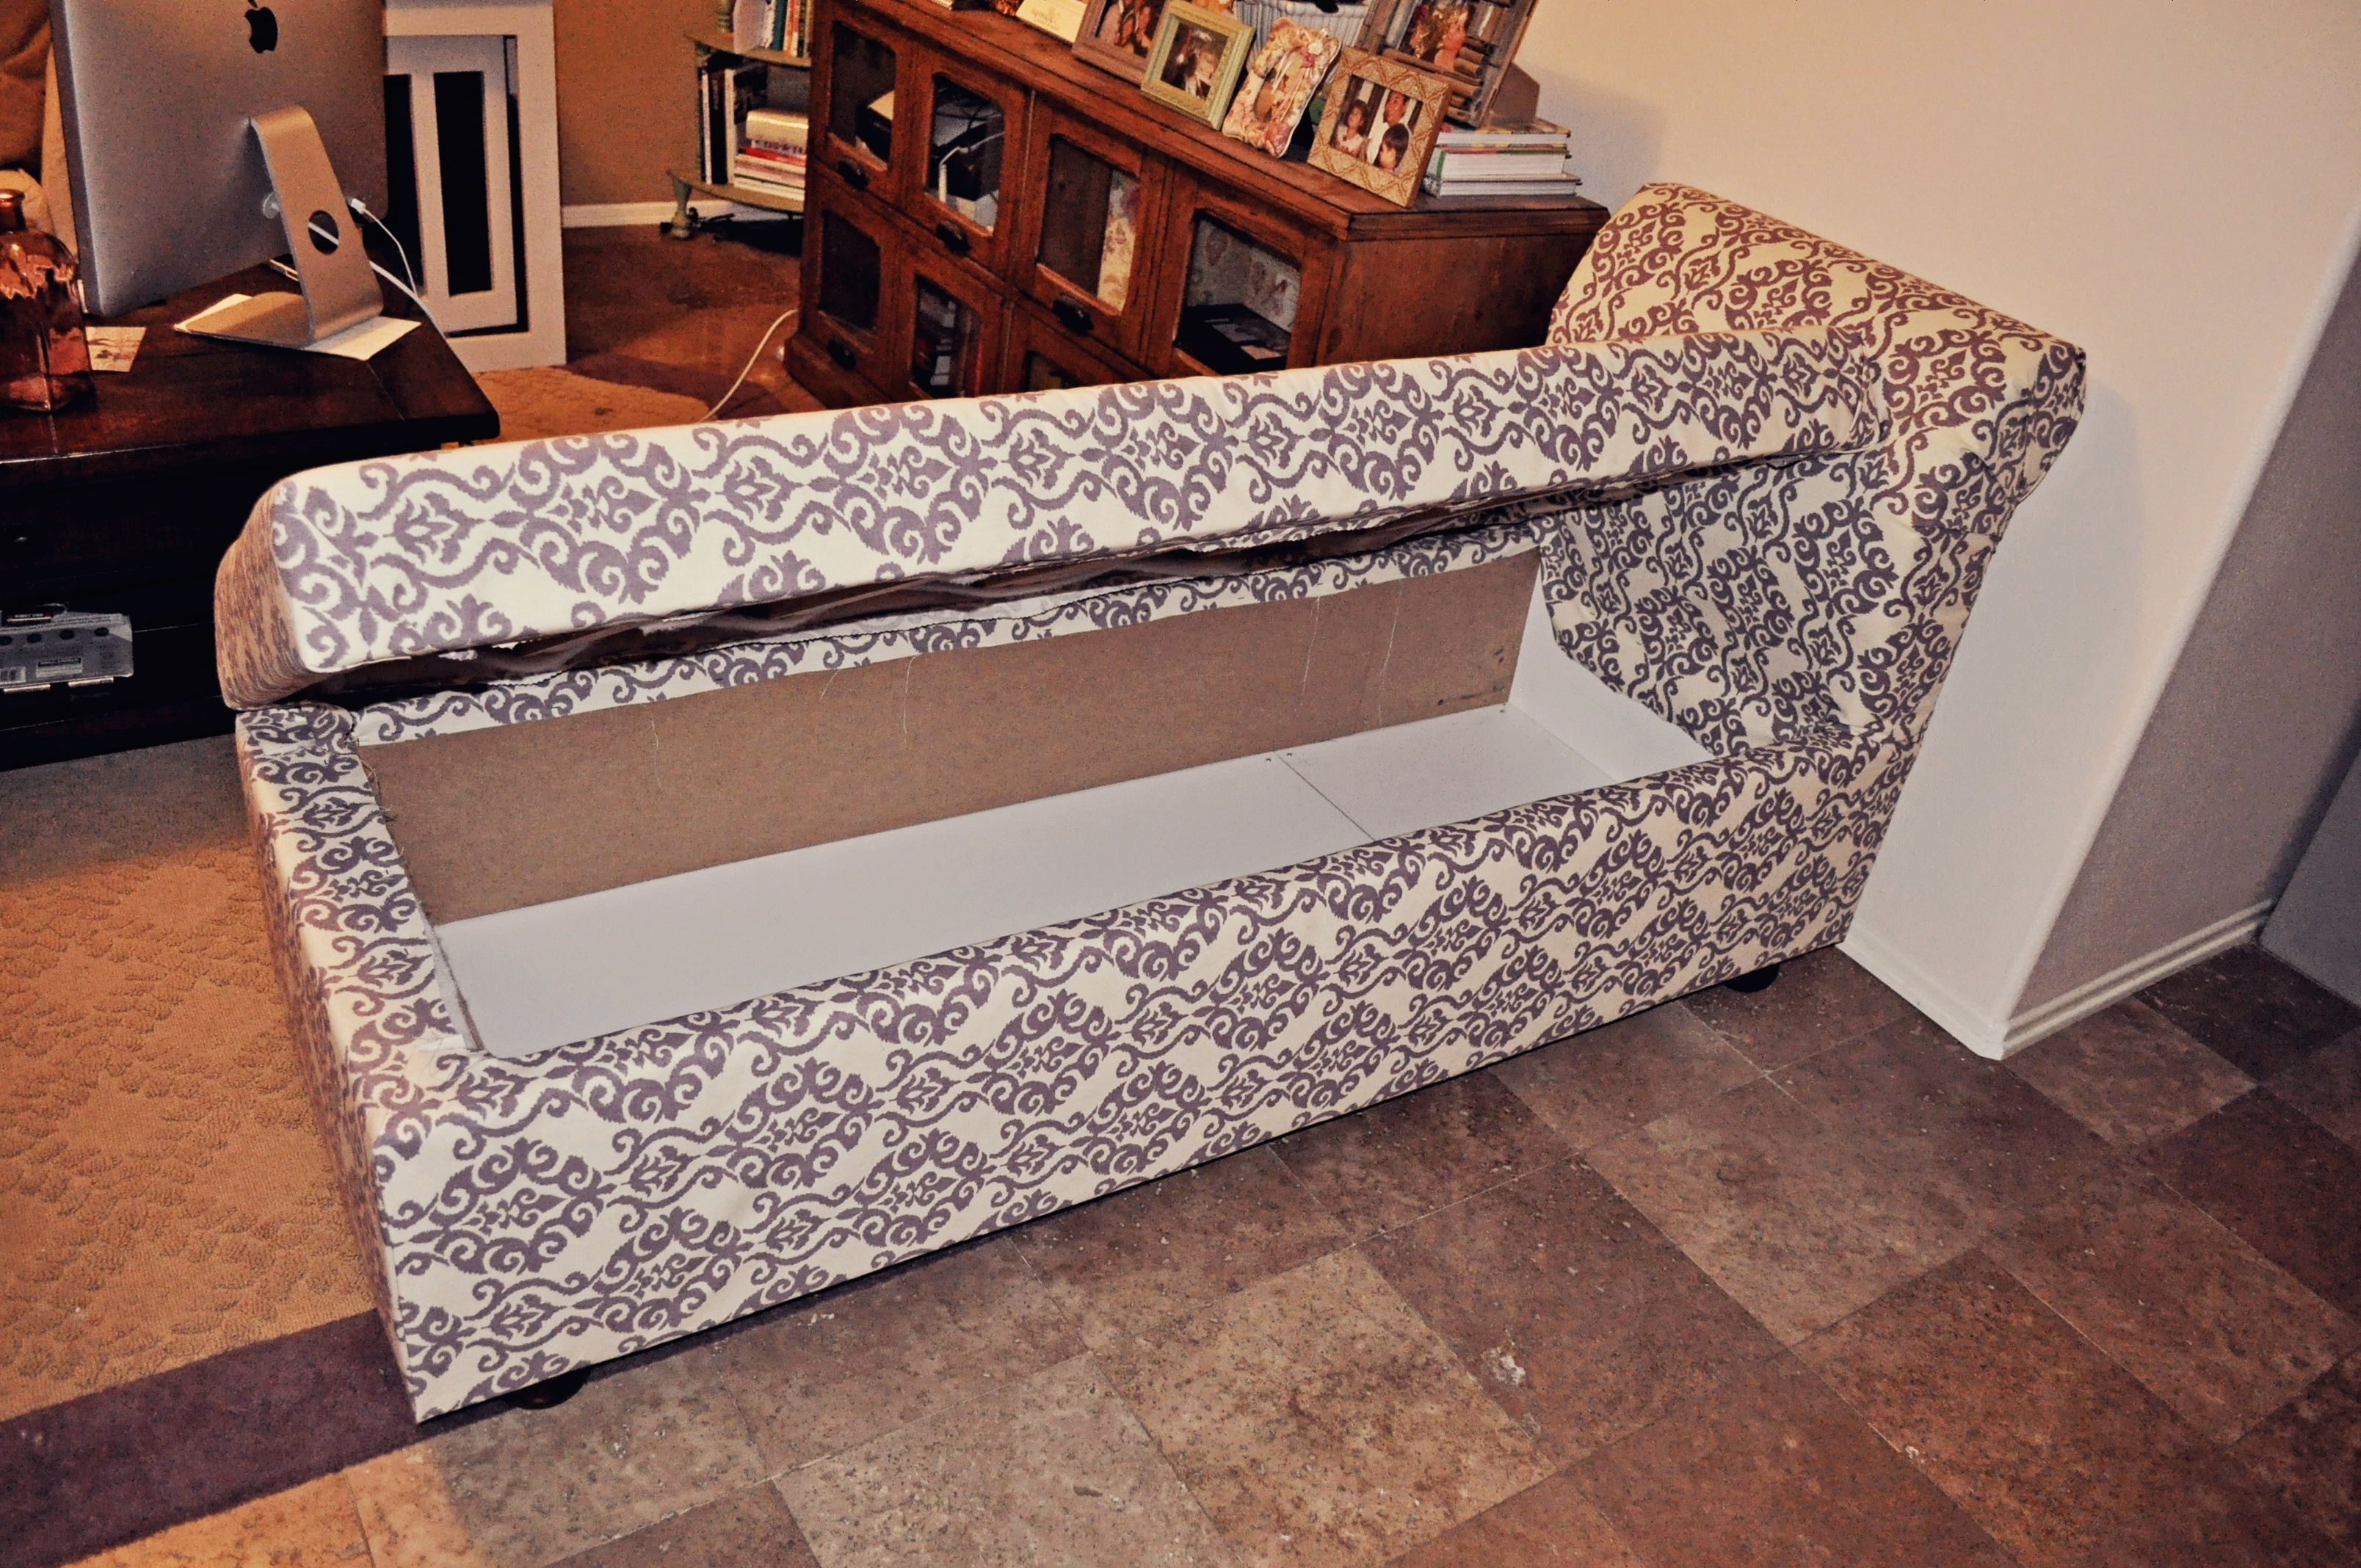 Storage Chaise Lounge – Diy Projects Inside Most Current Chaise Lounges With Storage (View 15 of 15)